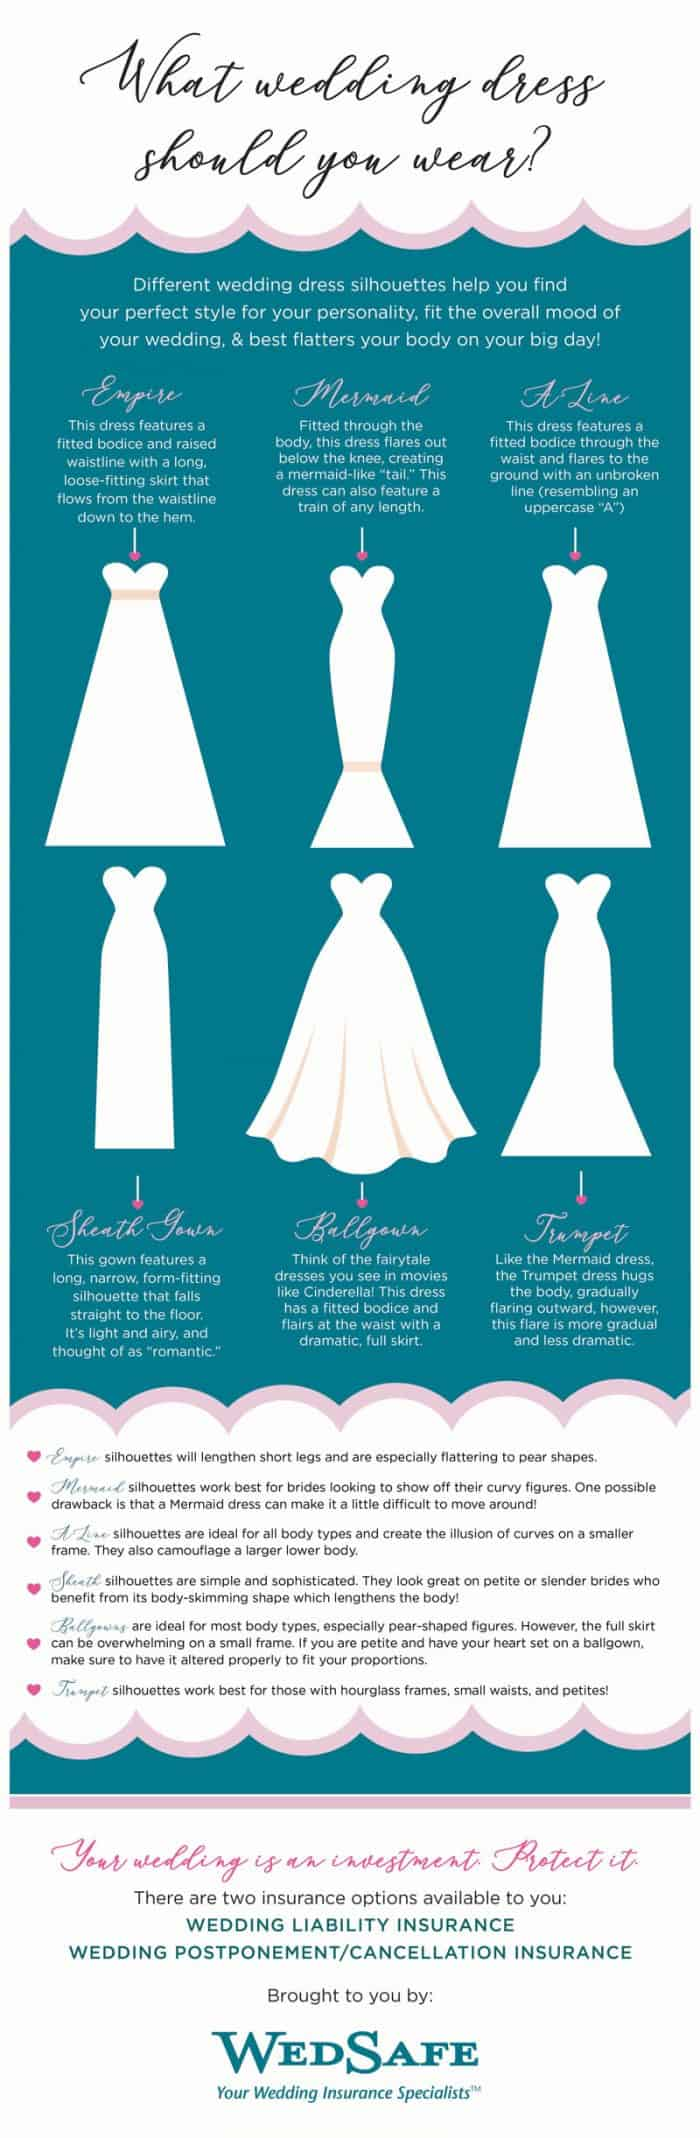 Infographic showing 6 wedding dress styles.